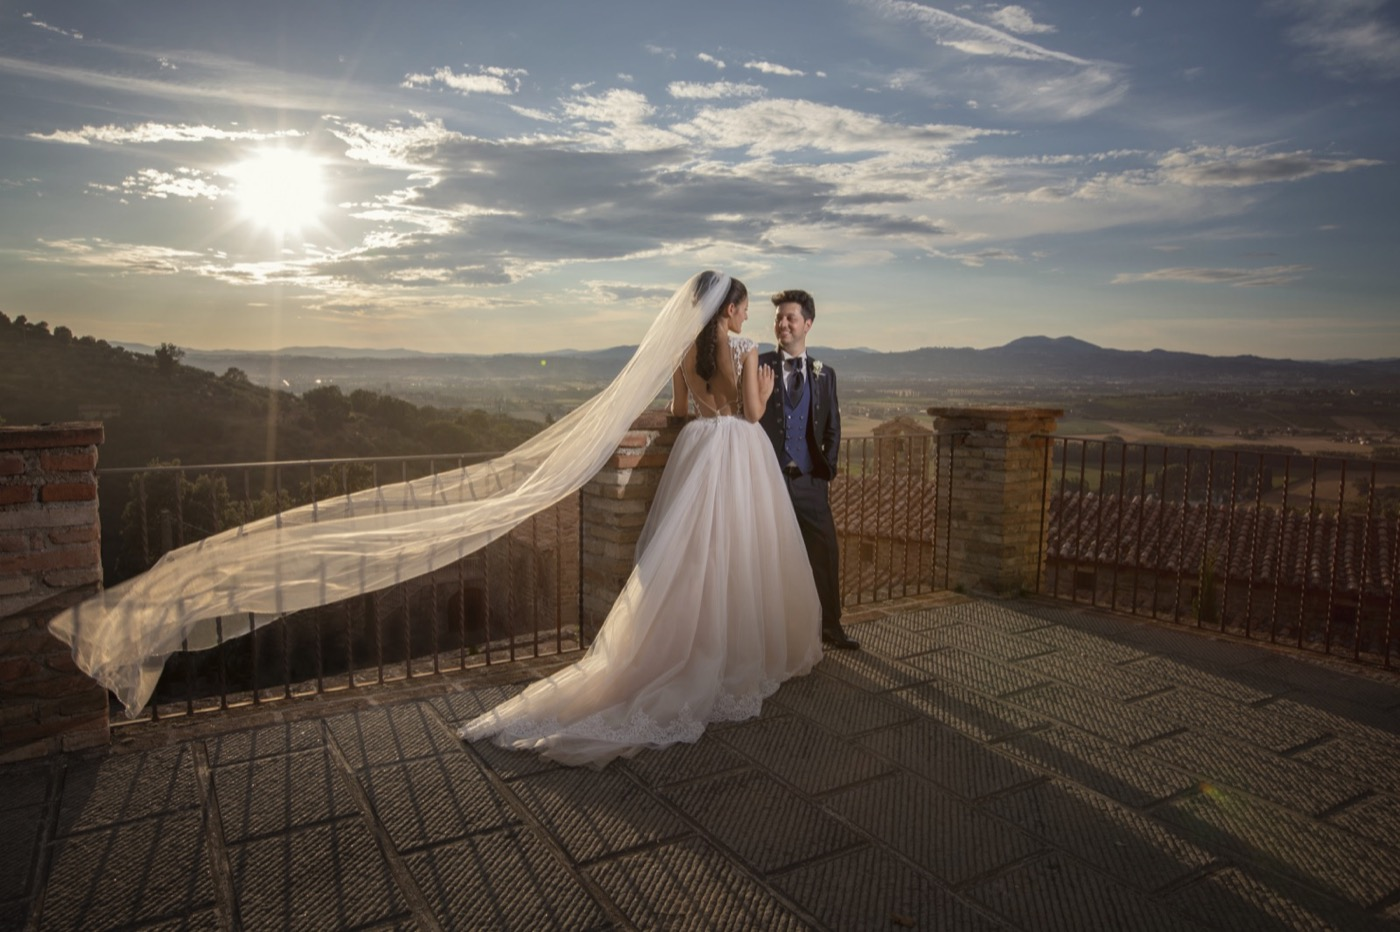 Claudio-Coppola-wedding-photographer-castello-rosciano-torgiano-53